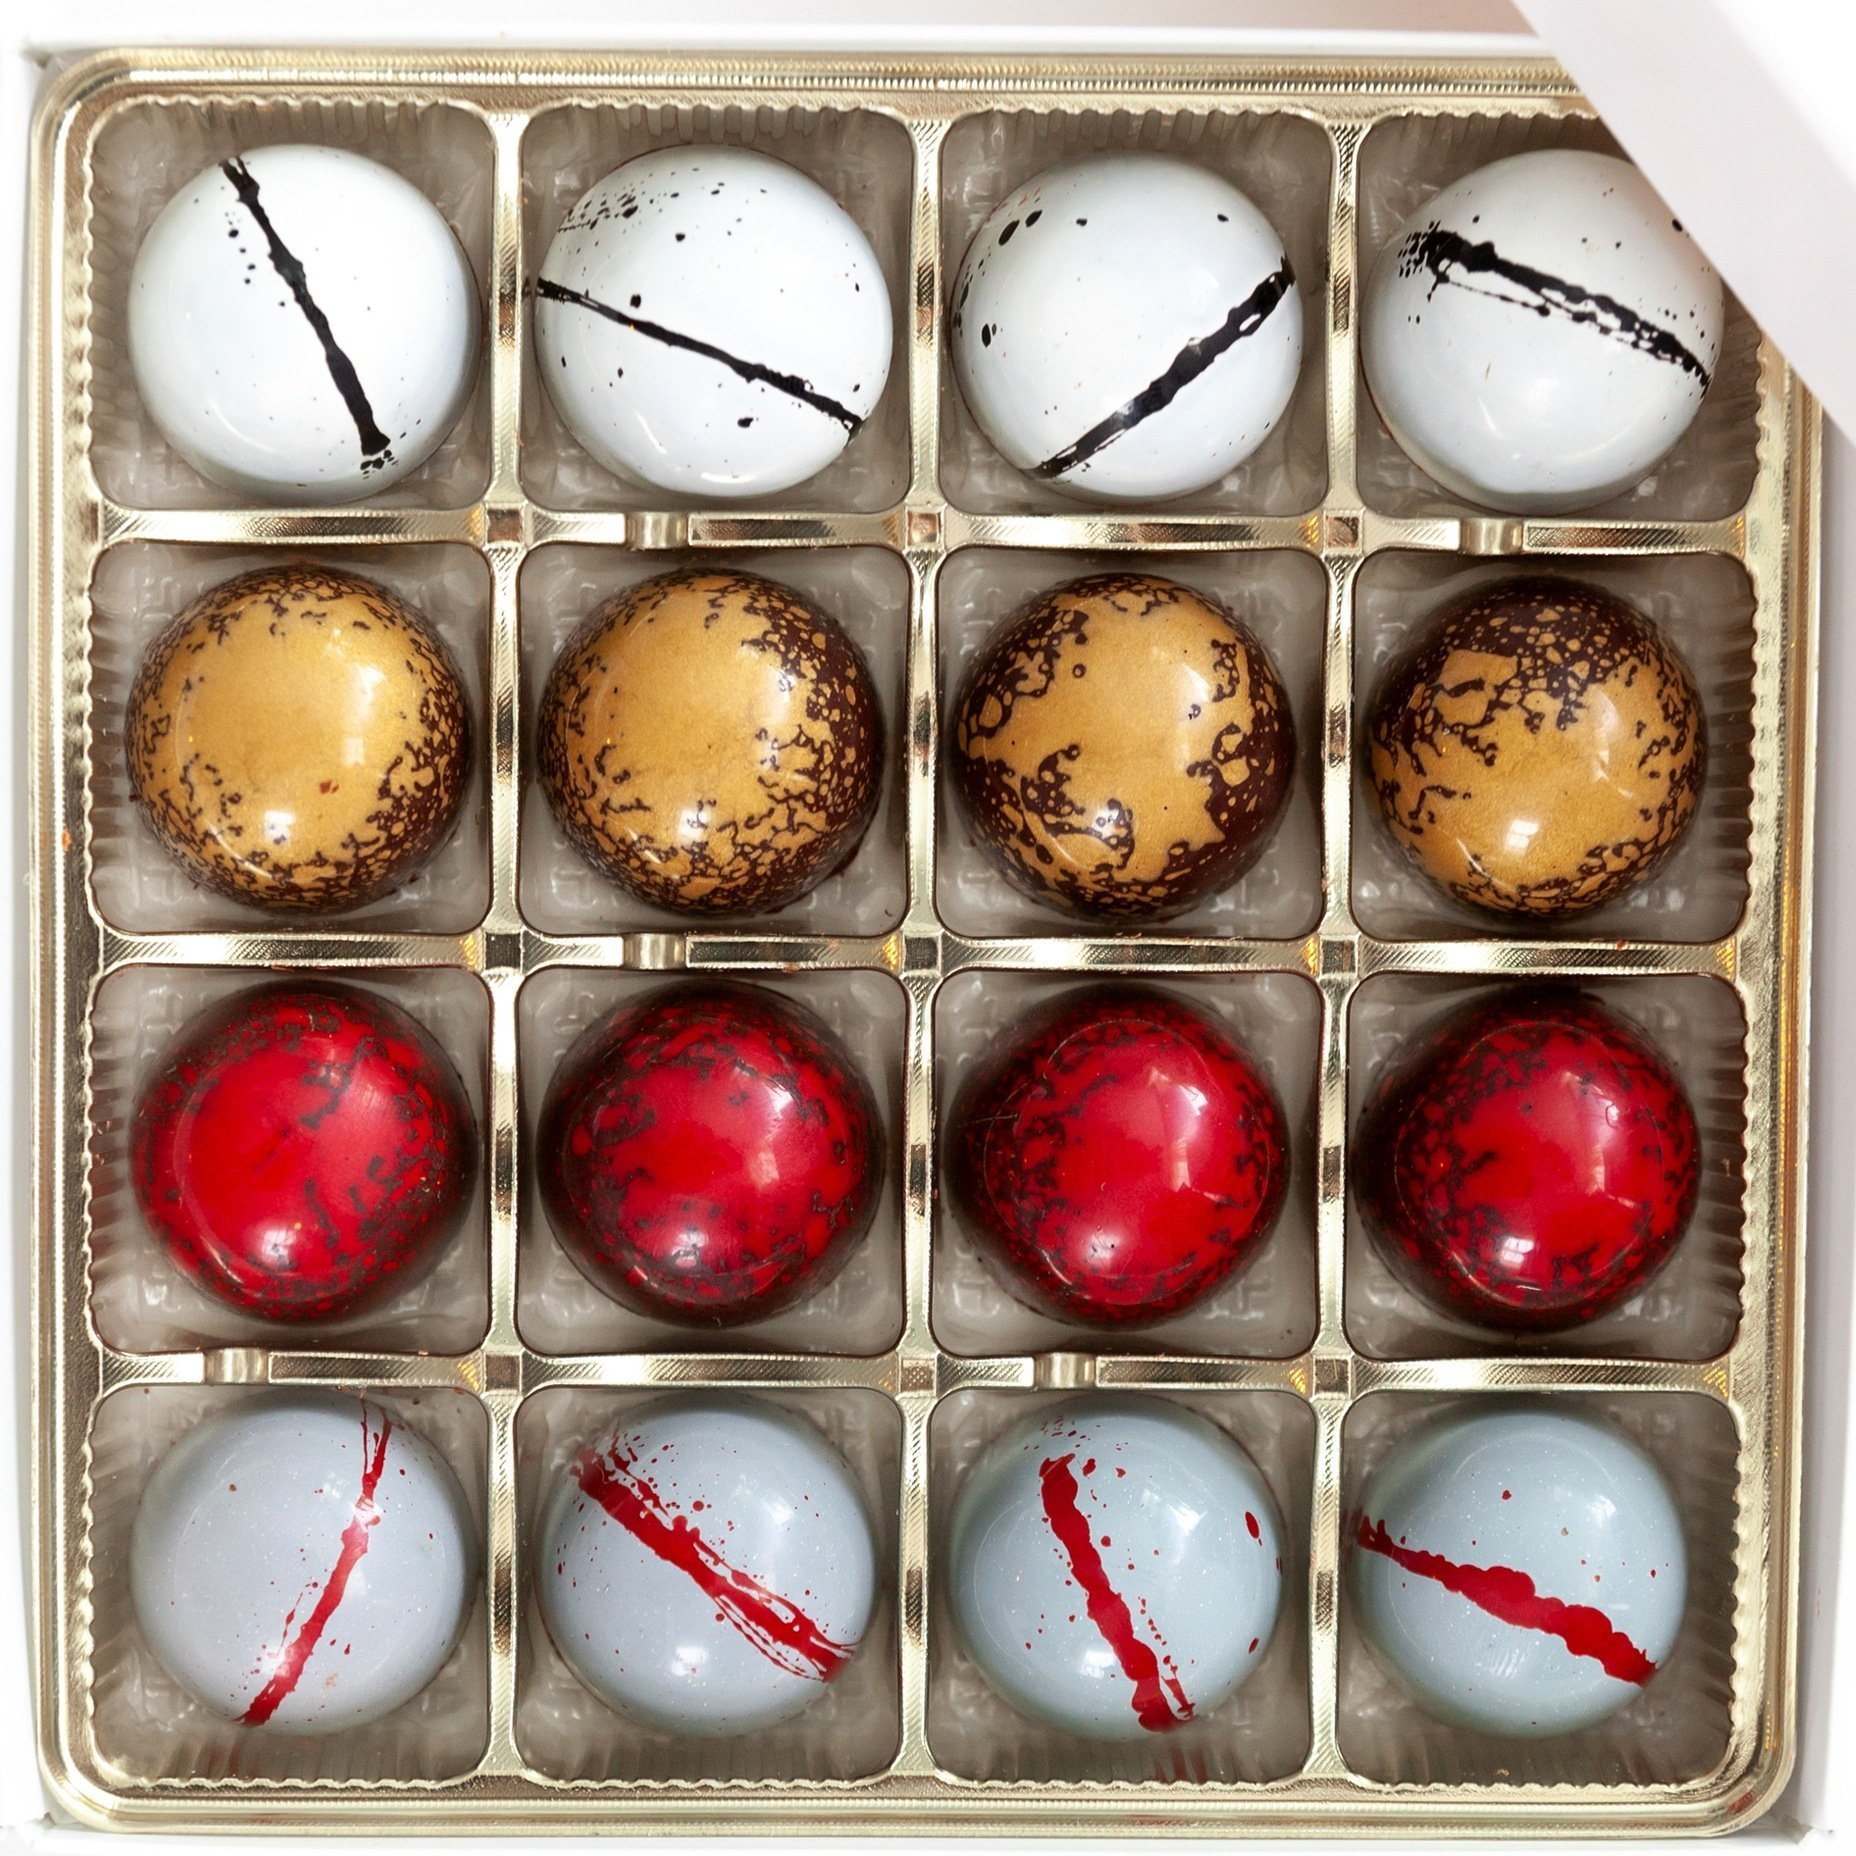 16 Piece Assorted Bonbon Box